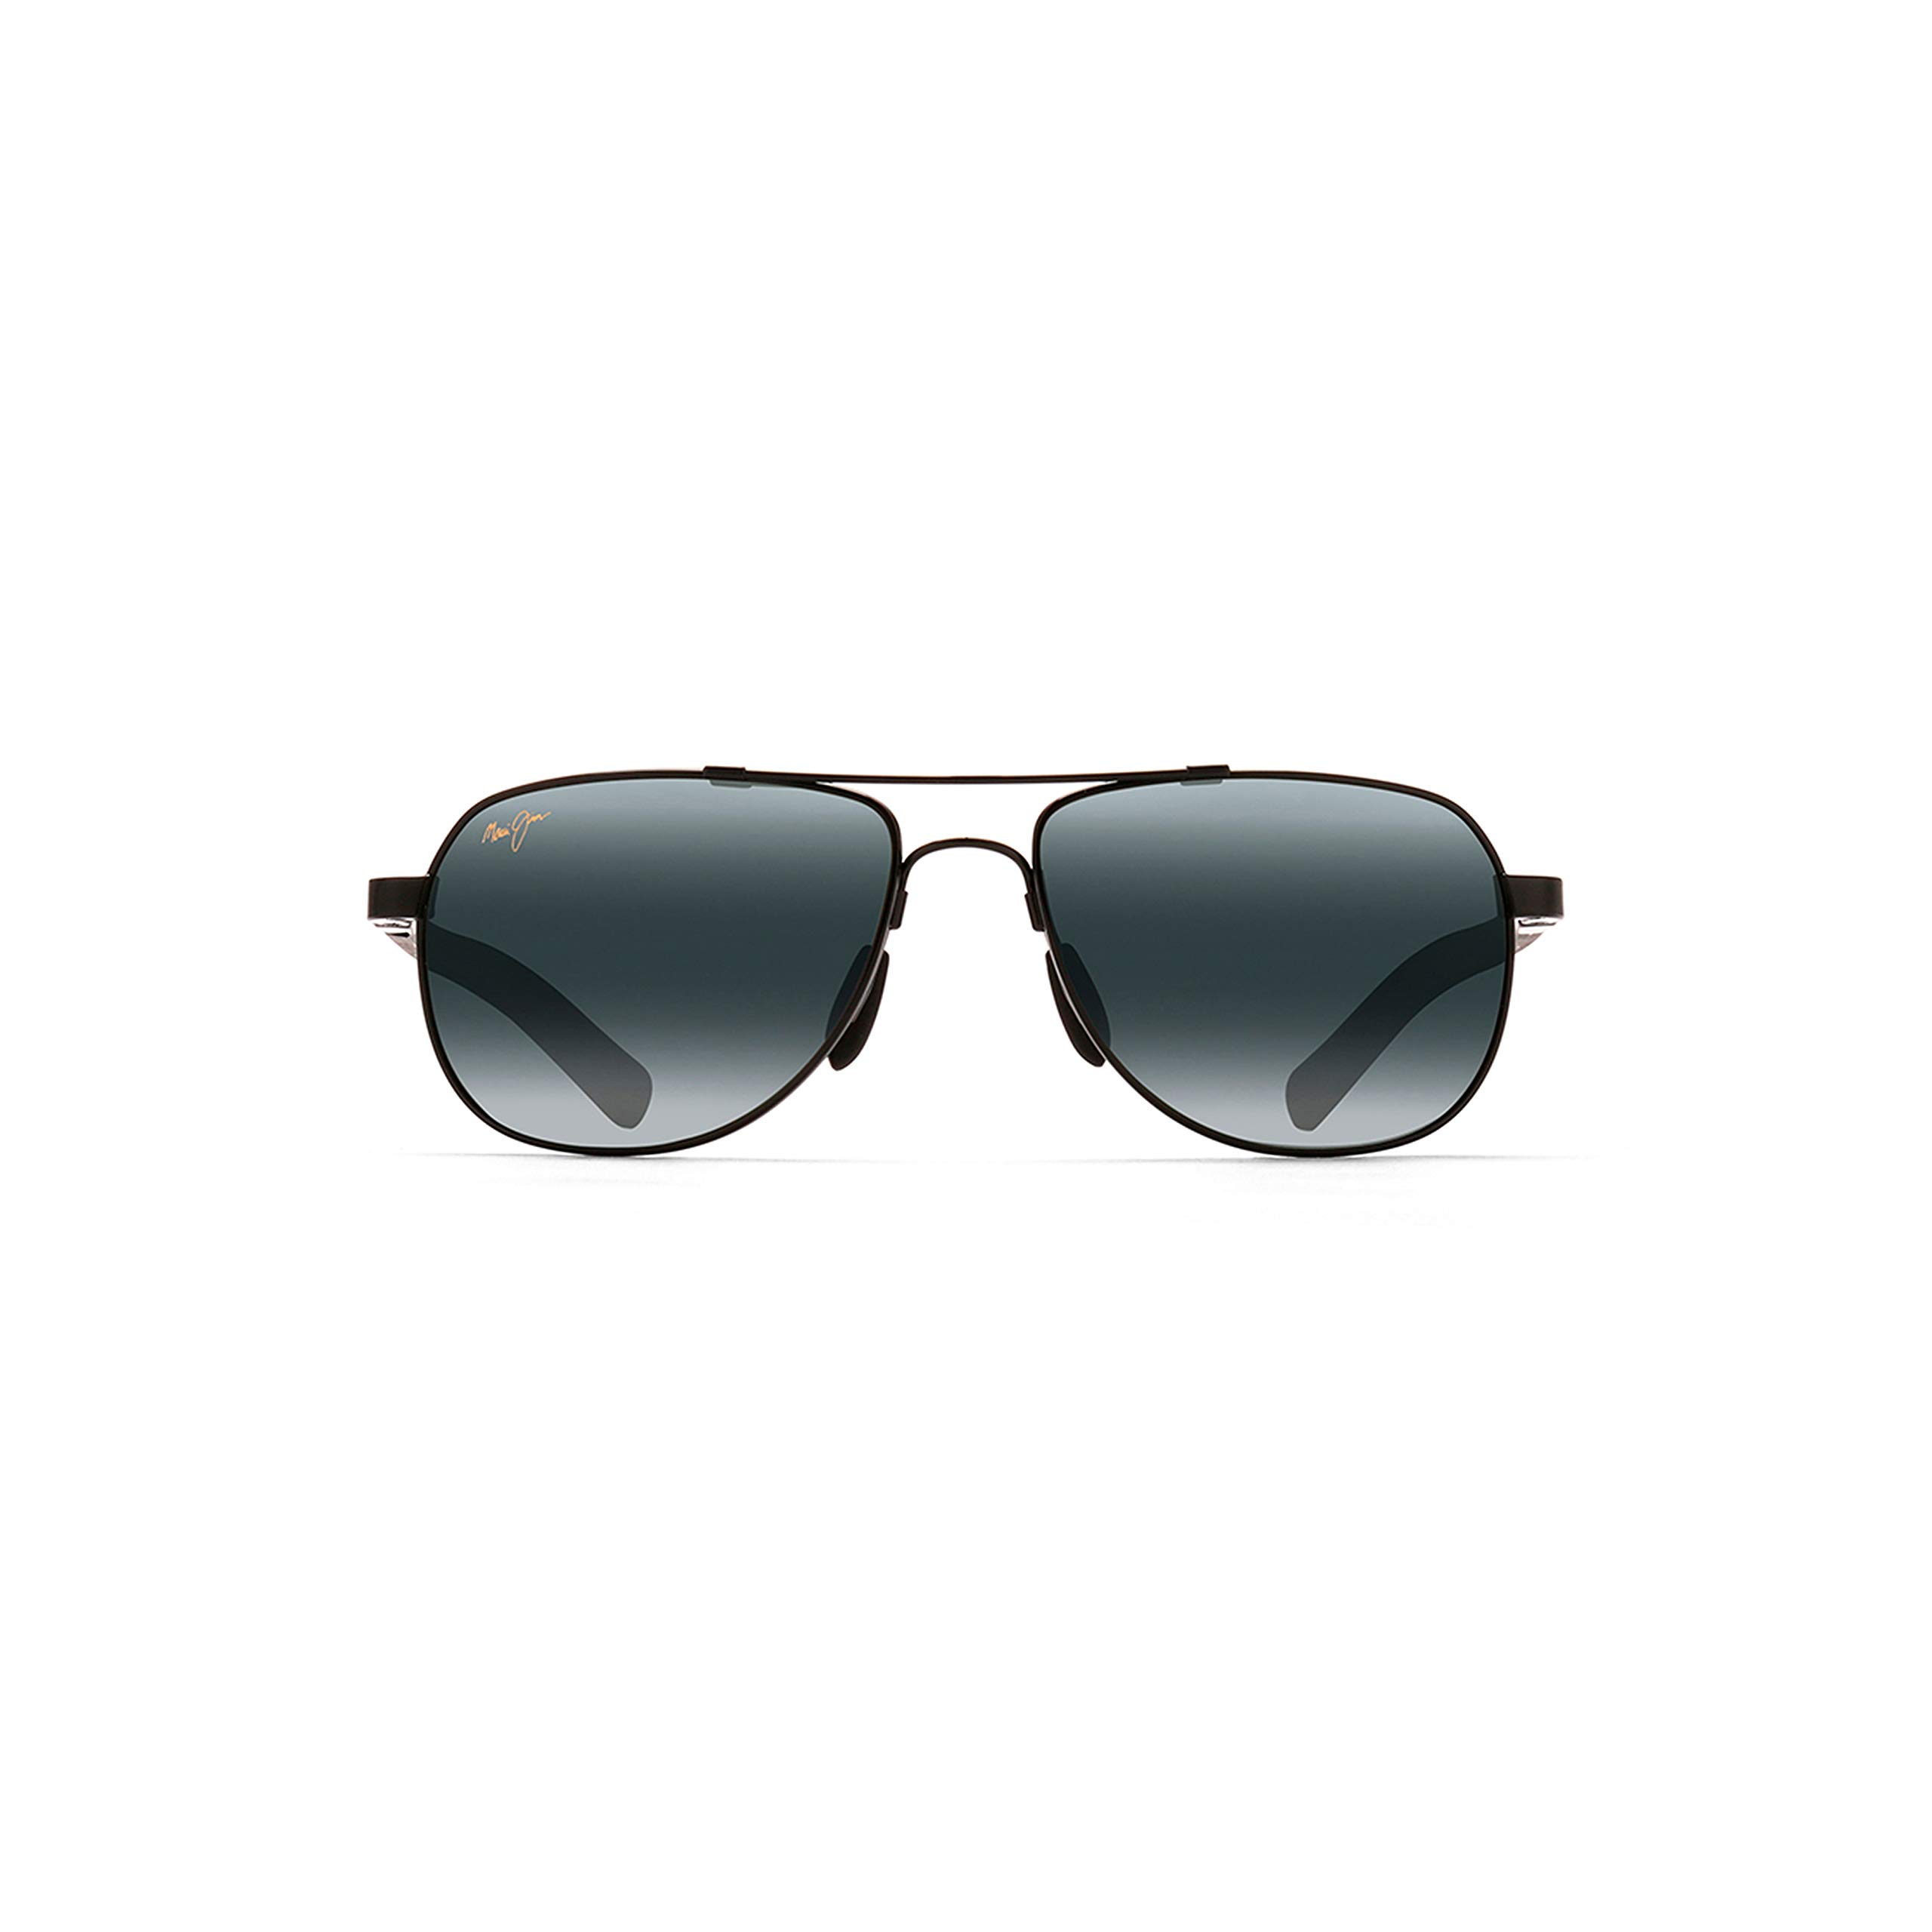 Maui Jim Guardrails 327-02 | Polarized Gloss Black Aviator Frame Sunglasses, Neutral Grey Lenses with Patented PolarizedPlus2 Lens Technology by Maui Jim